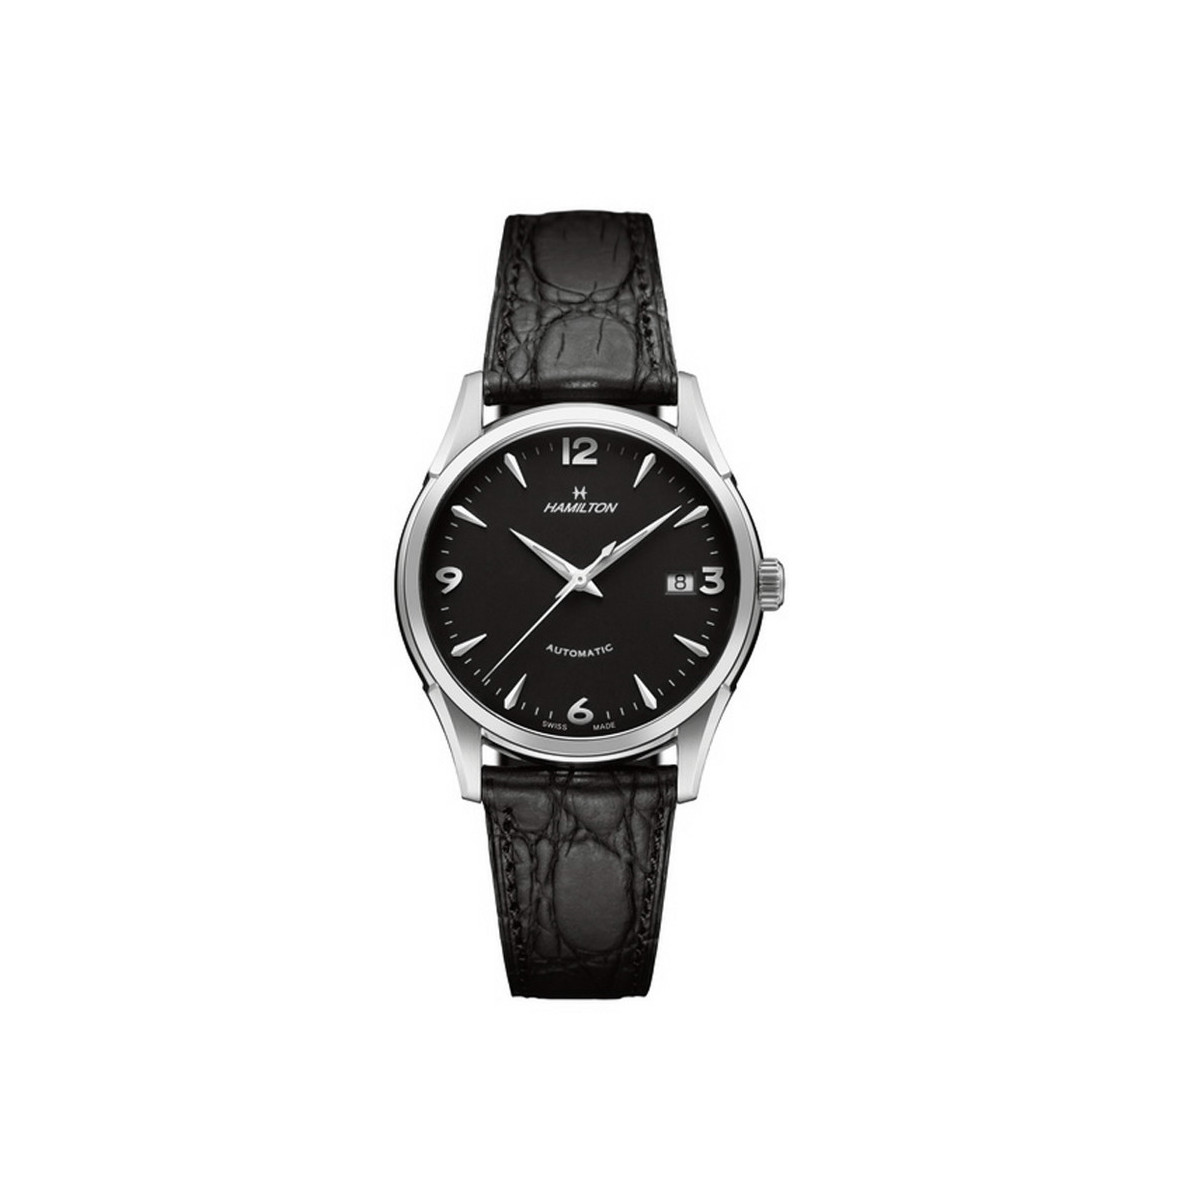 HAMILTON JAZZMASTER THINOMATIC